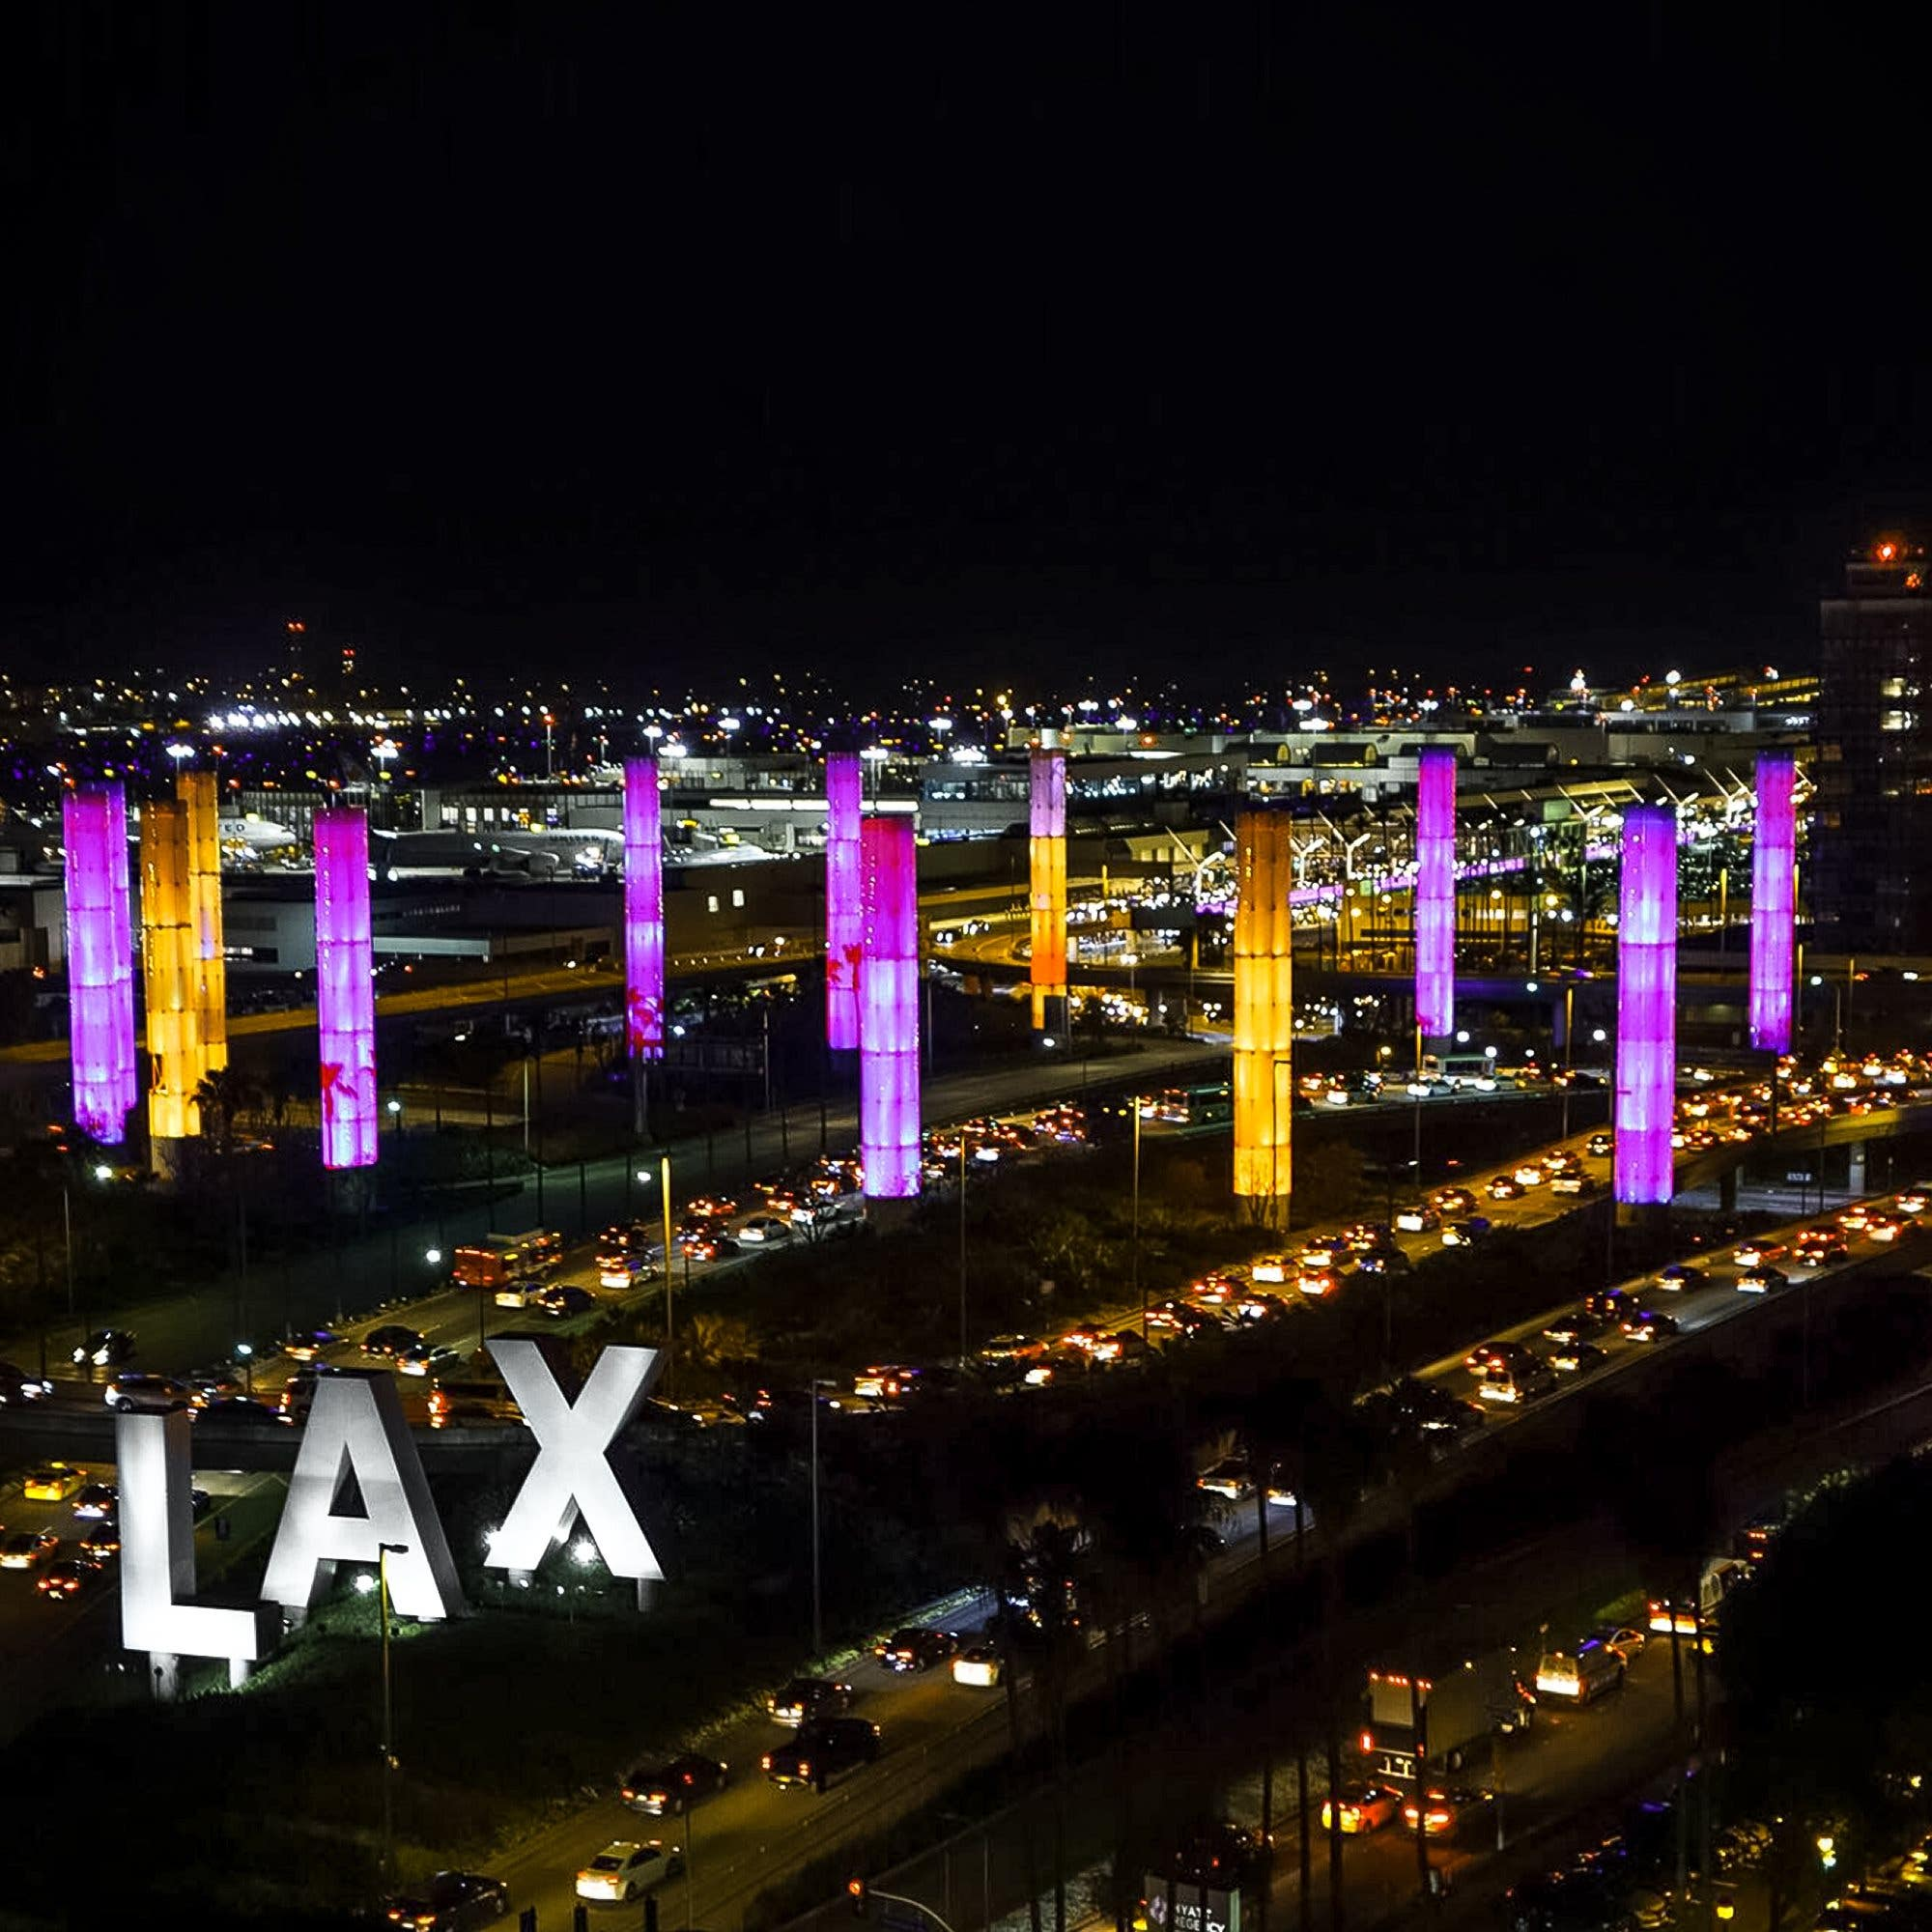 LAX Gateway Pylons are lit up in purple and gold in honor of Kobe Bryant